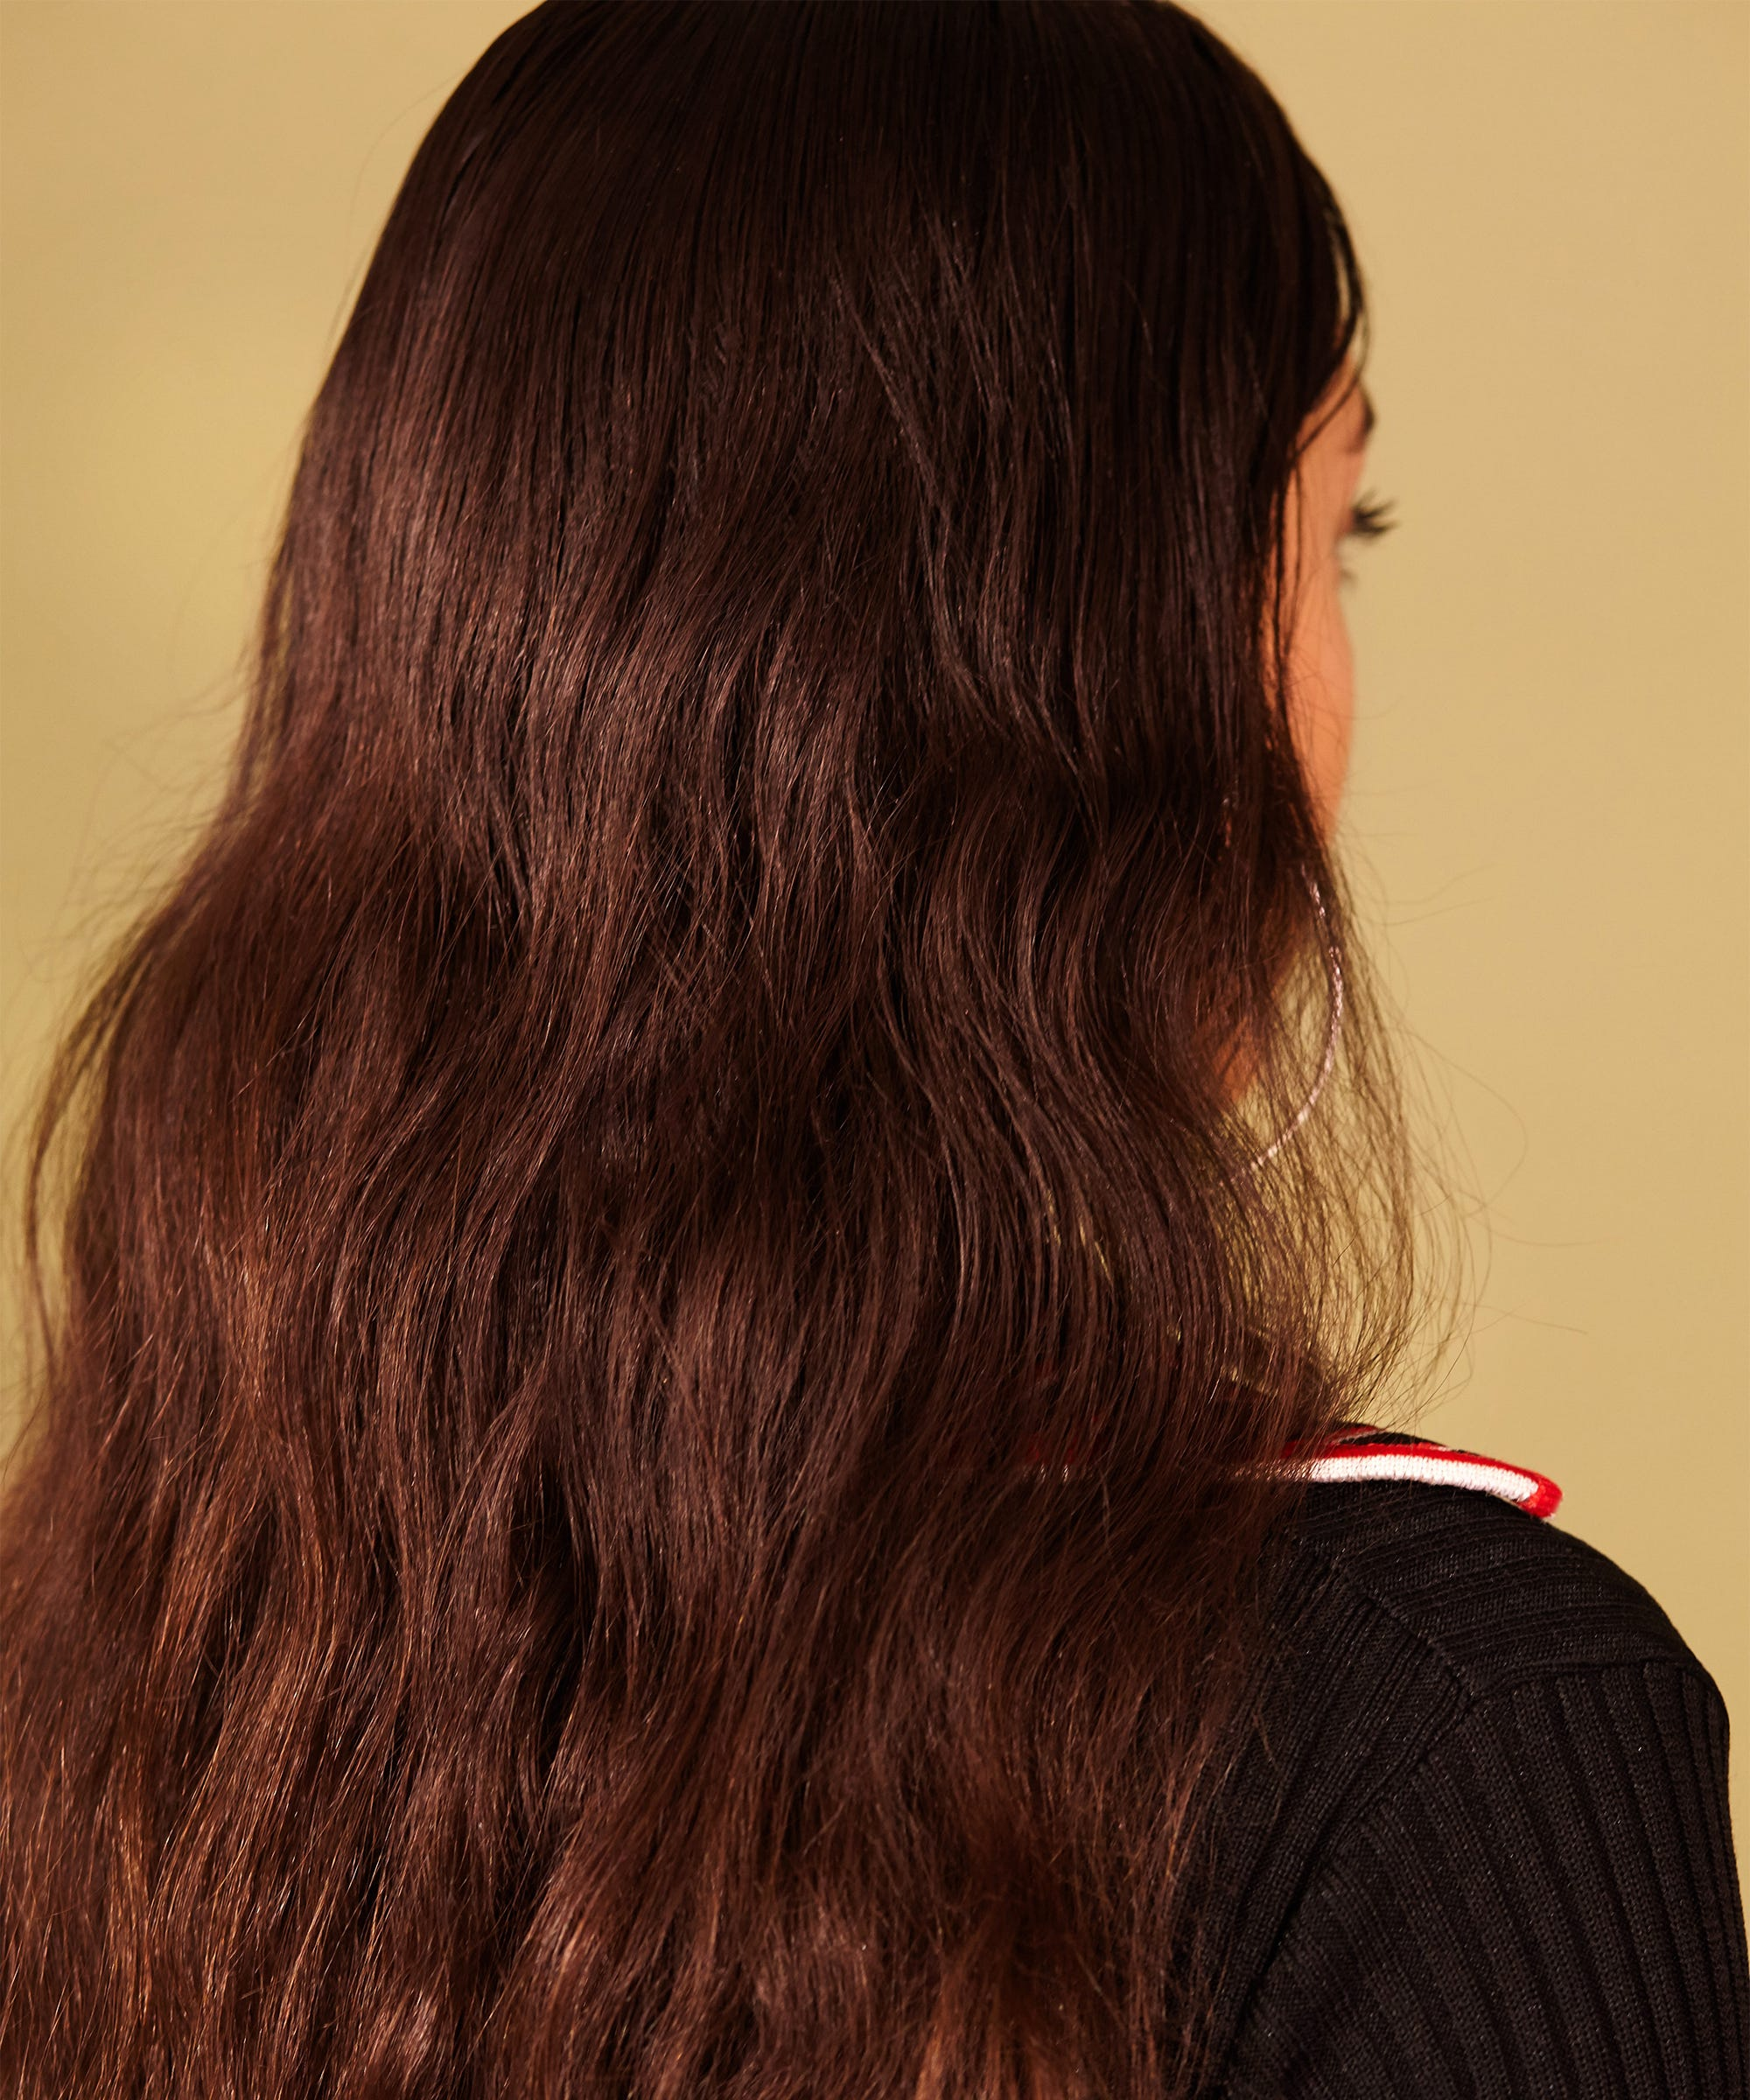 Rice Water For Hair Growth? Benefits & Effects To Know